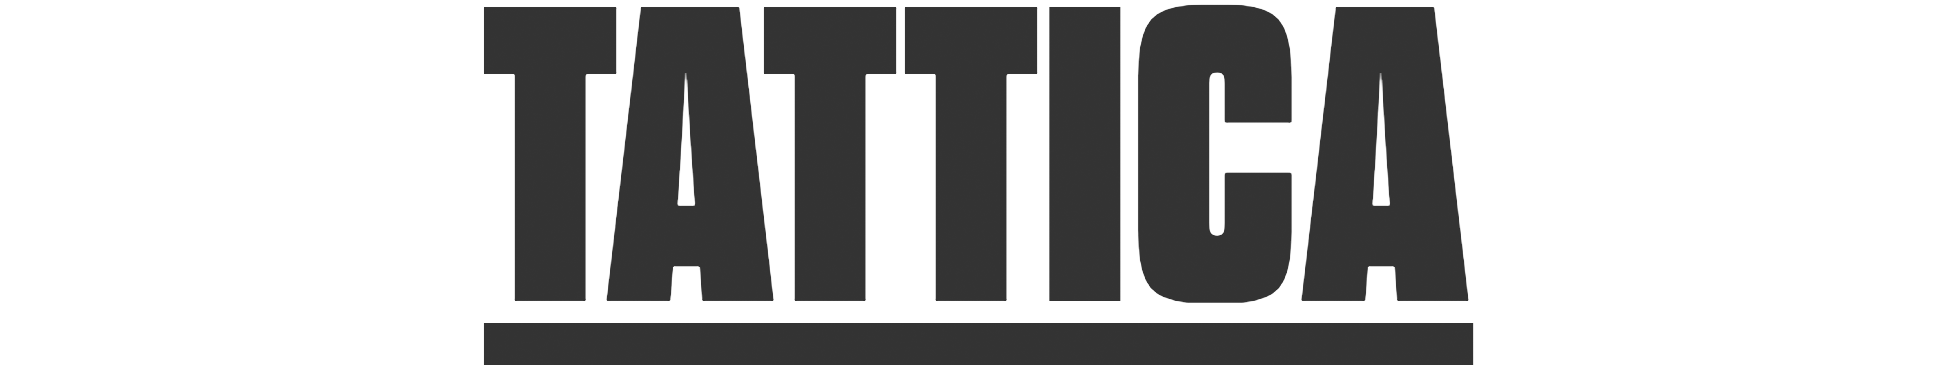 Logotipo de Tattica